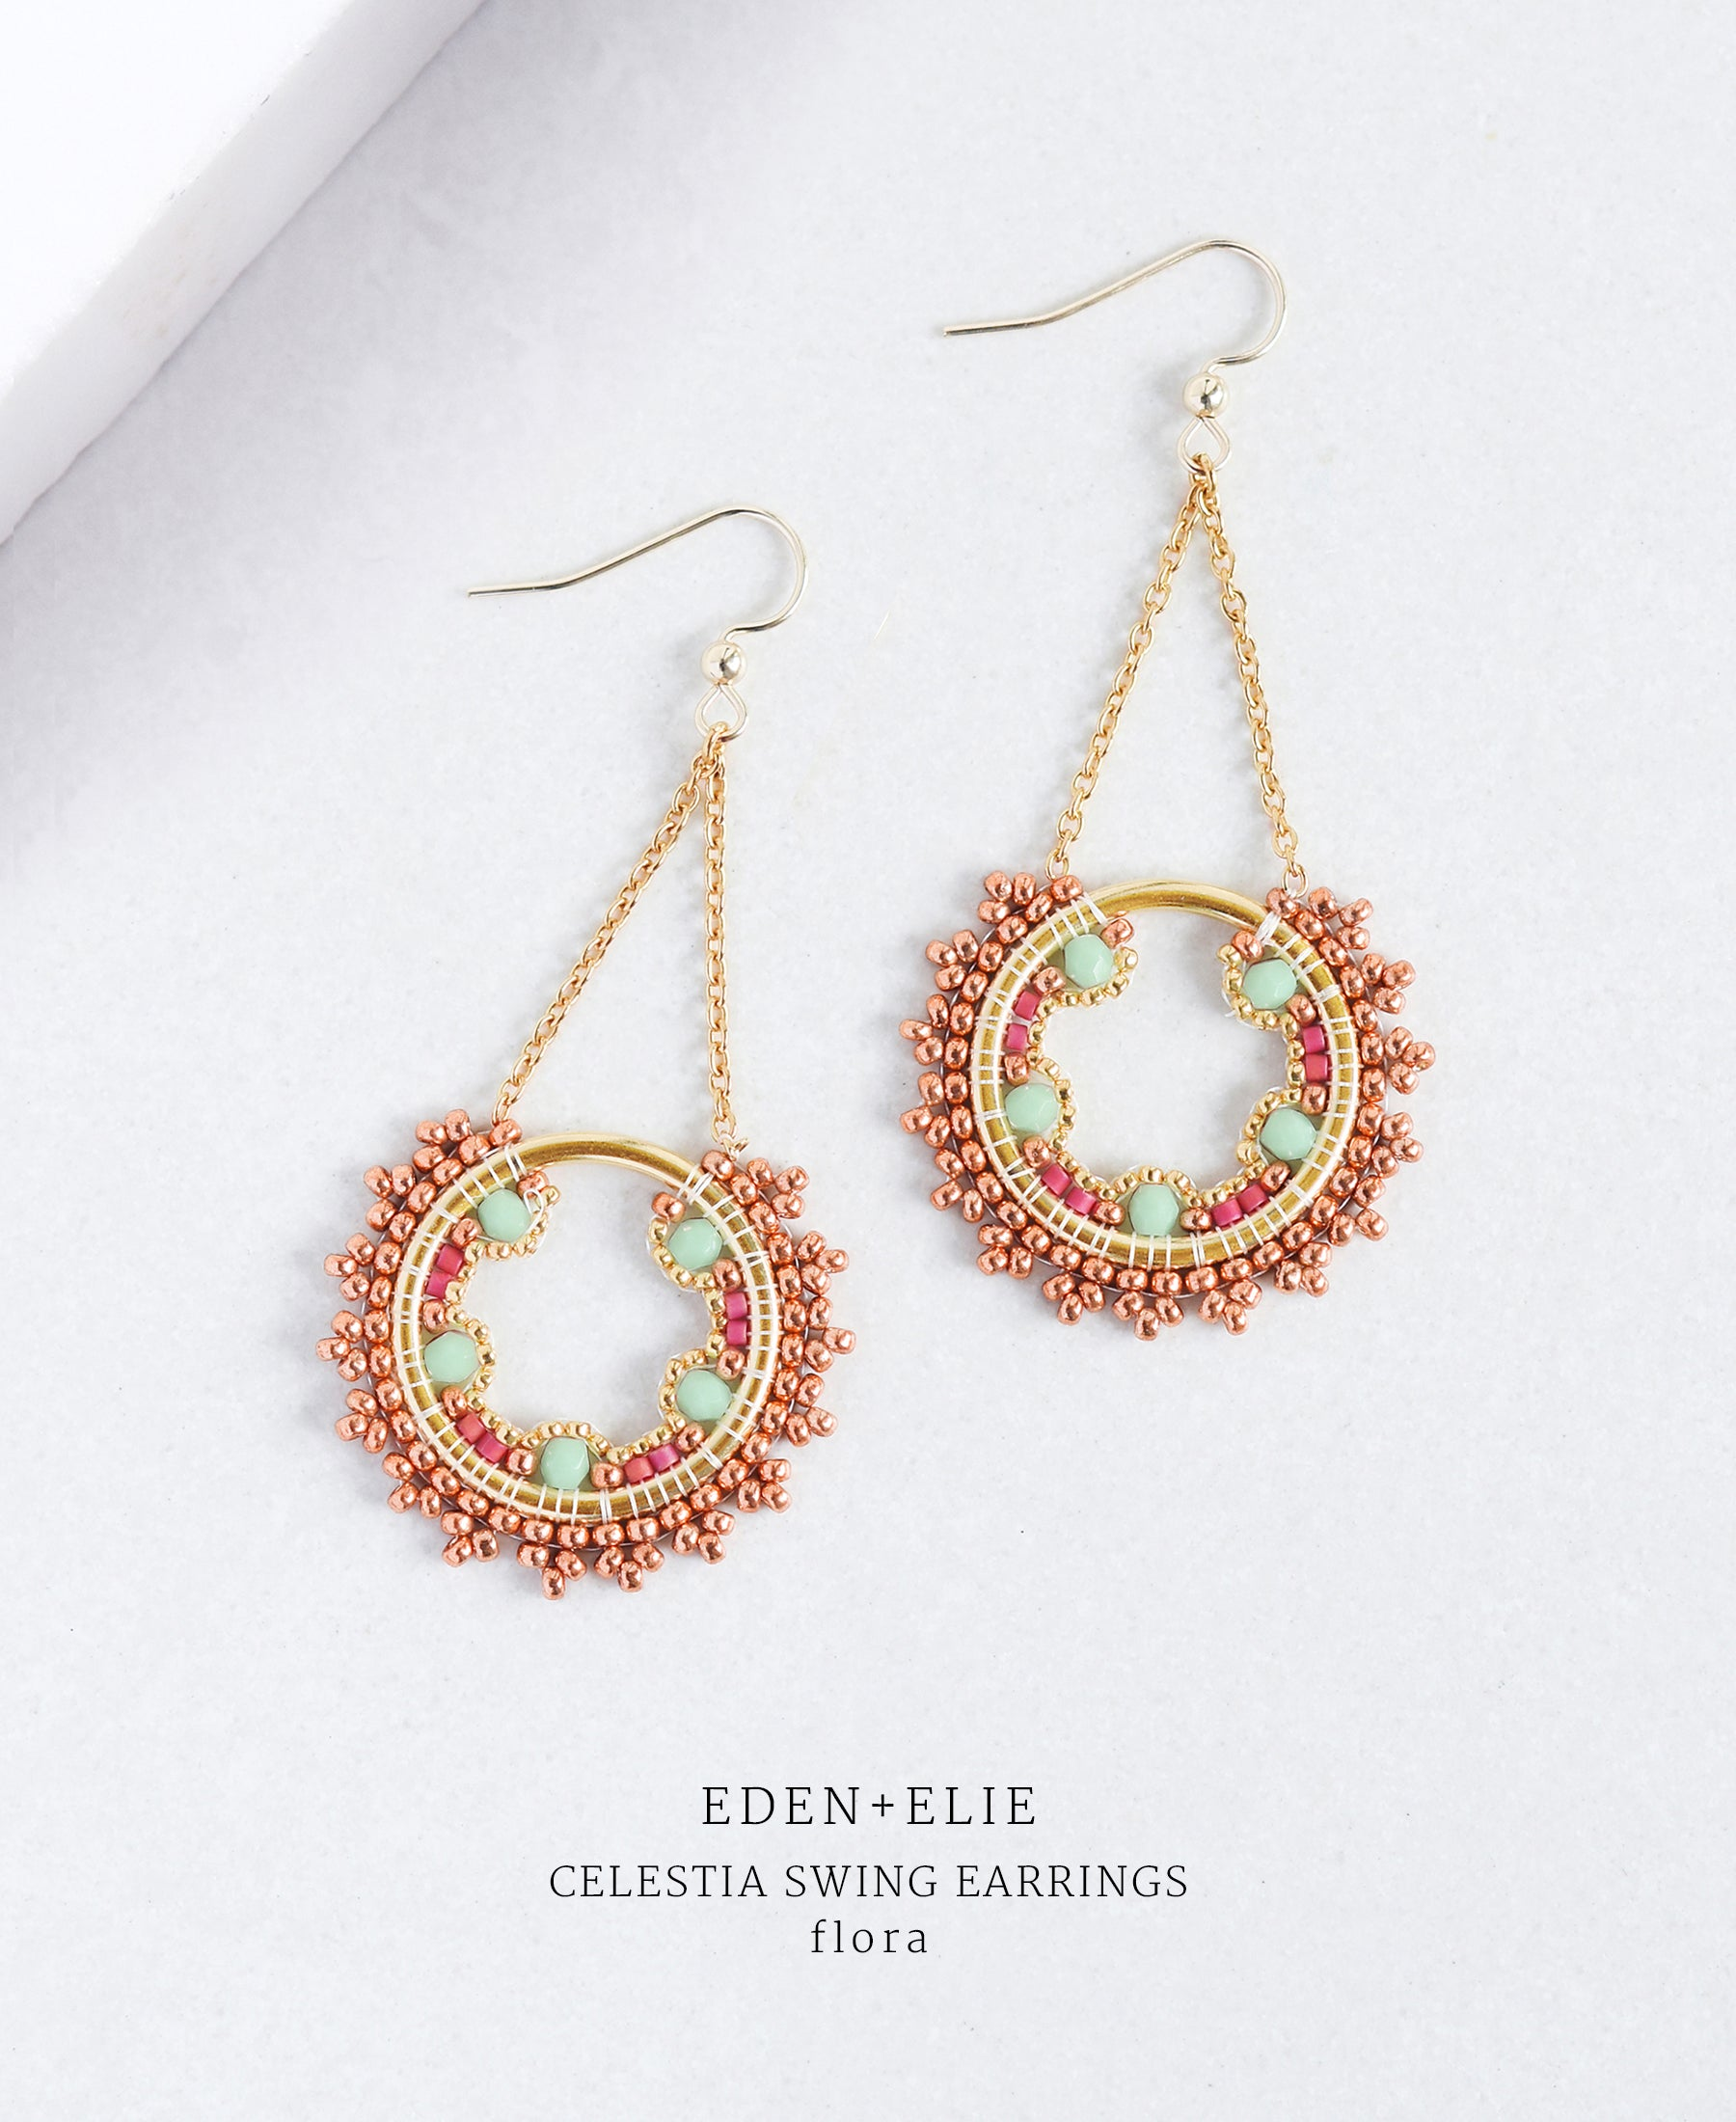 EDEN + ELIE Celestia swing earrings - flora green